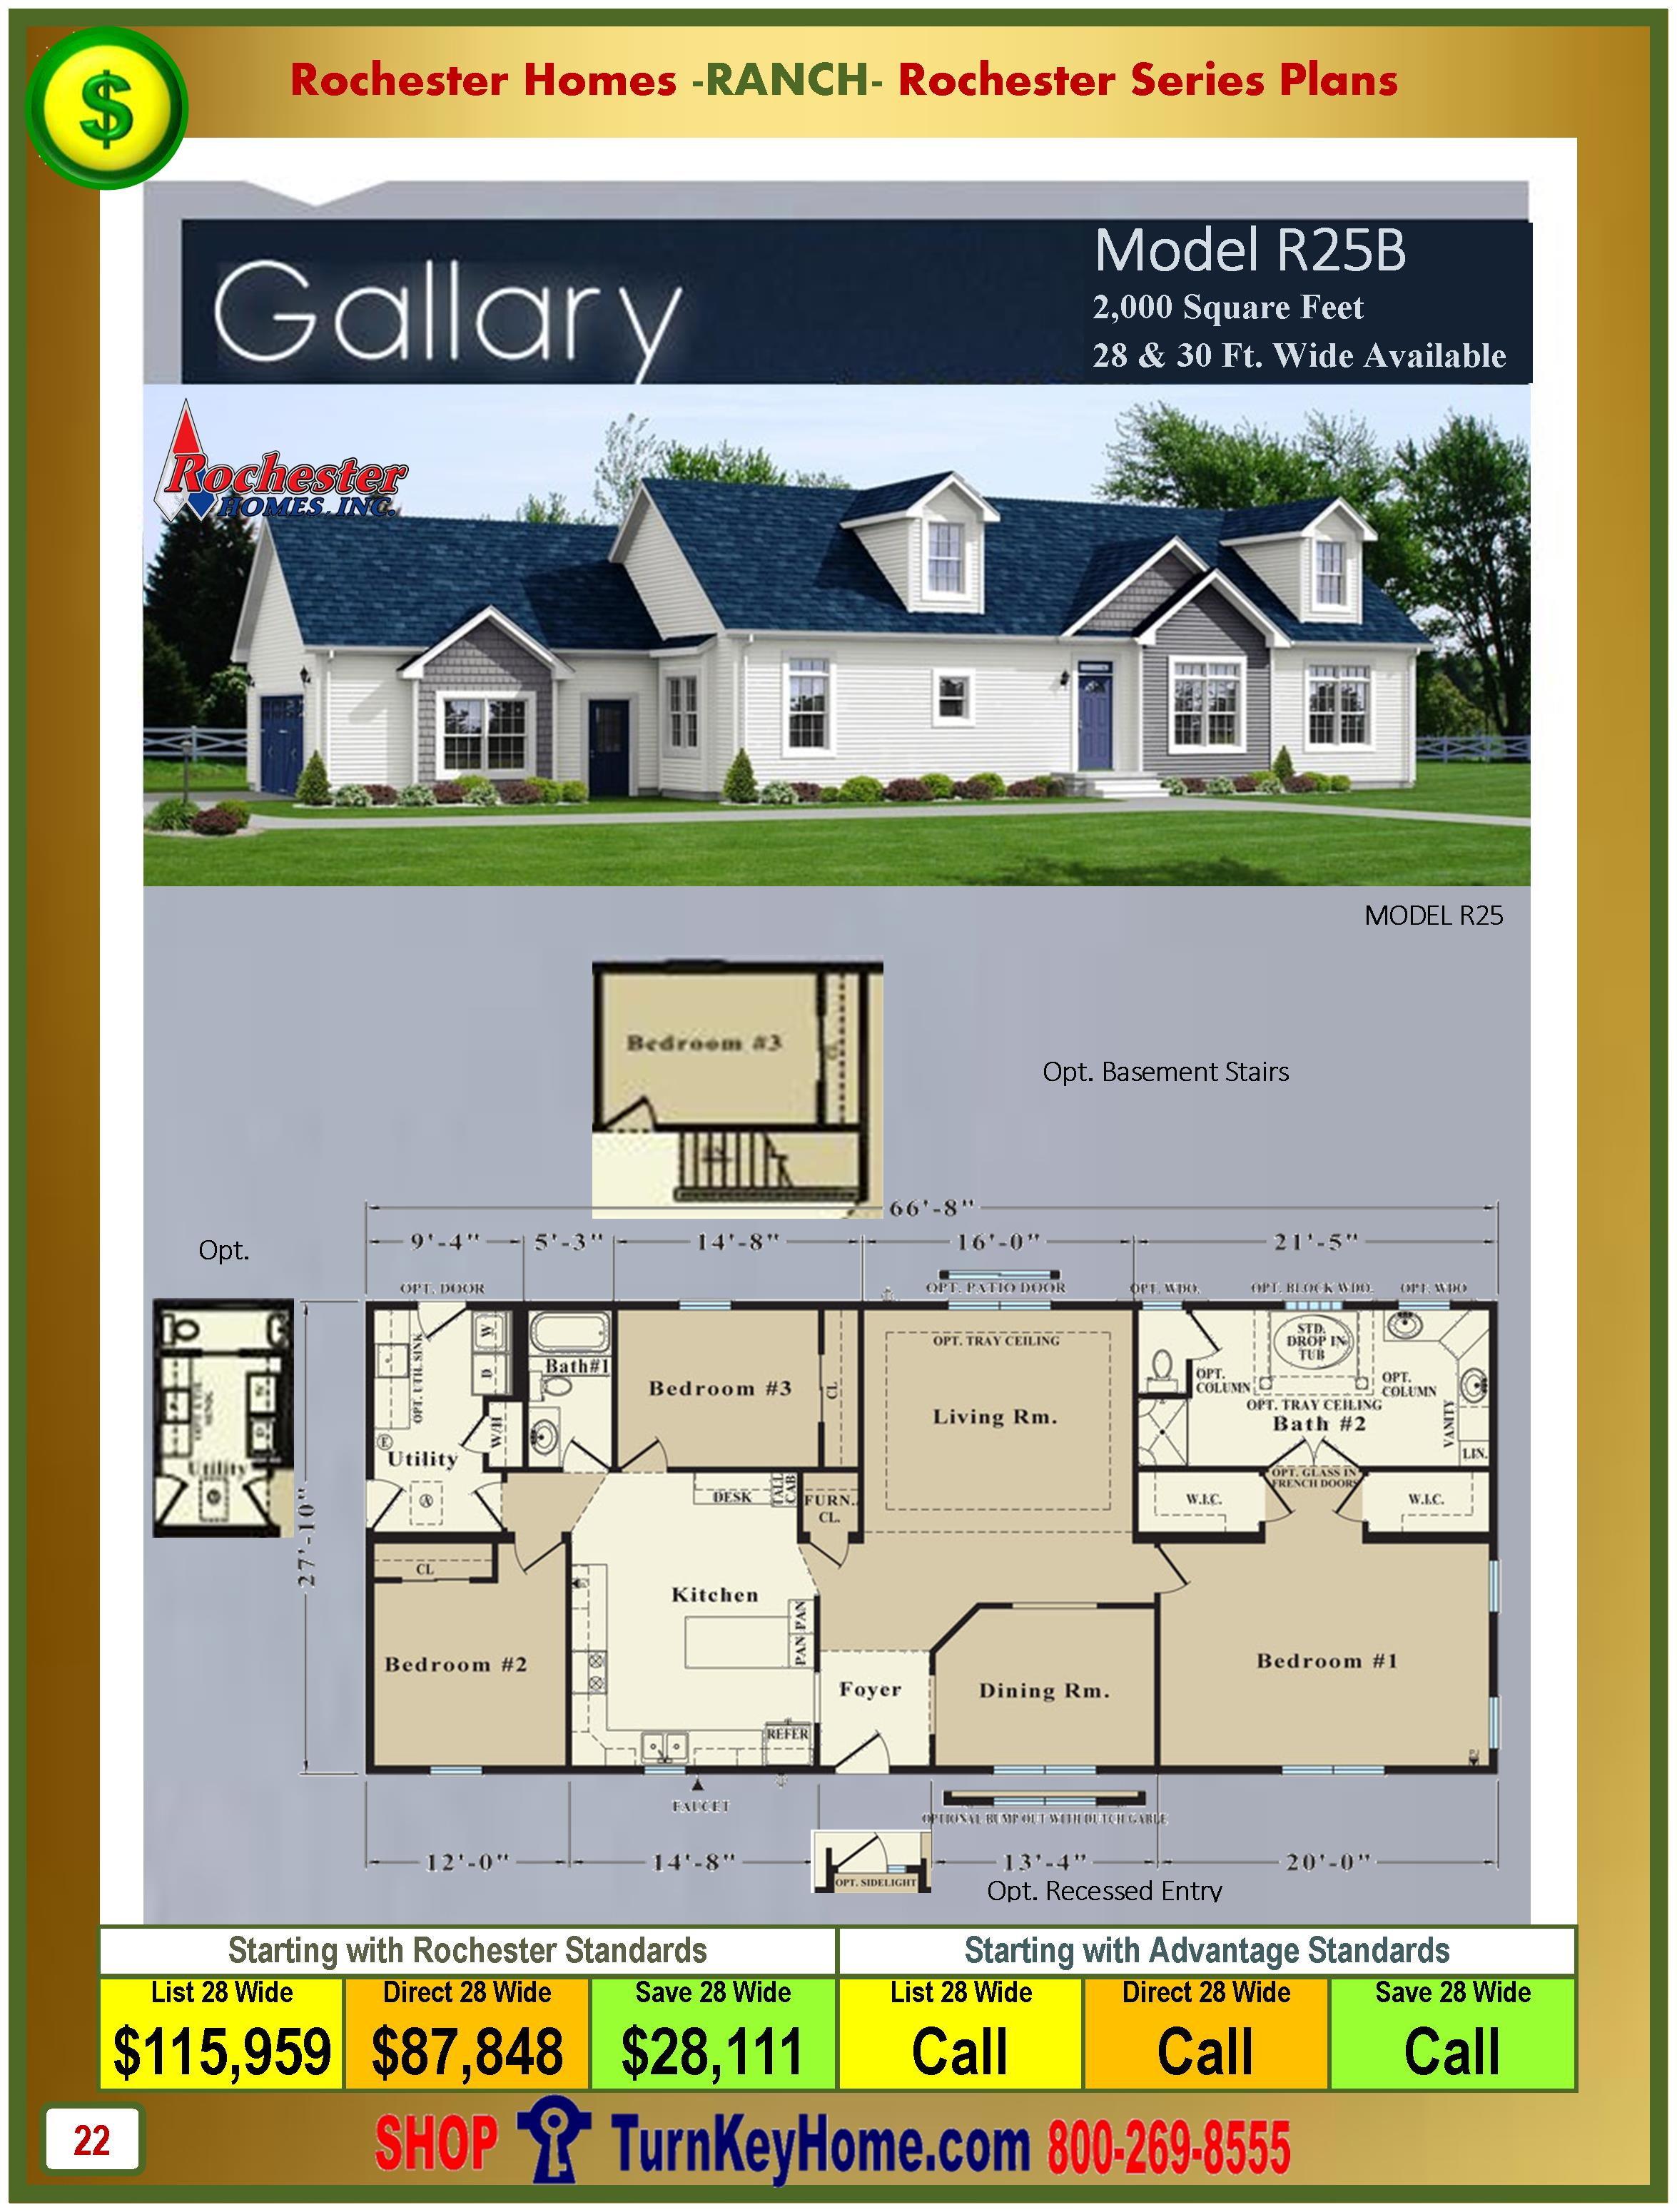 Modular.Homes.Rochester.Home.Inc.Gallery.R25B.Ranch.Plan.Price.Catalog.P22